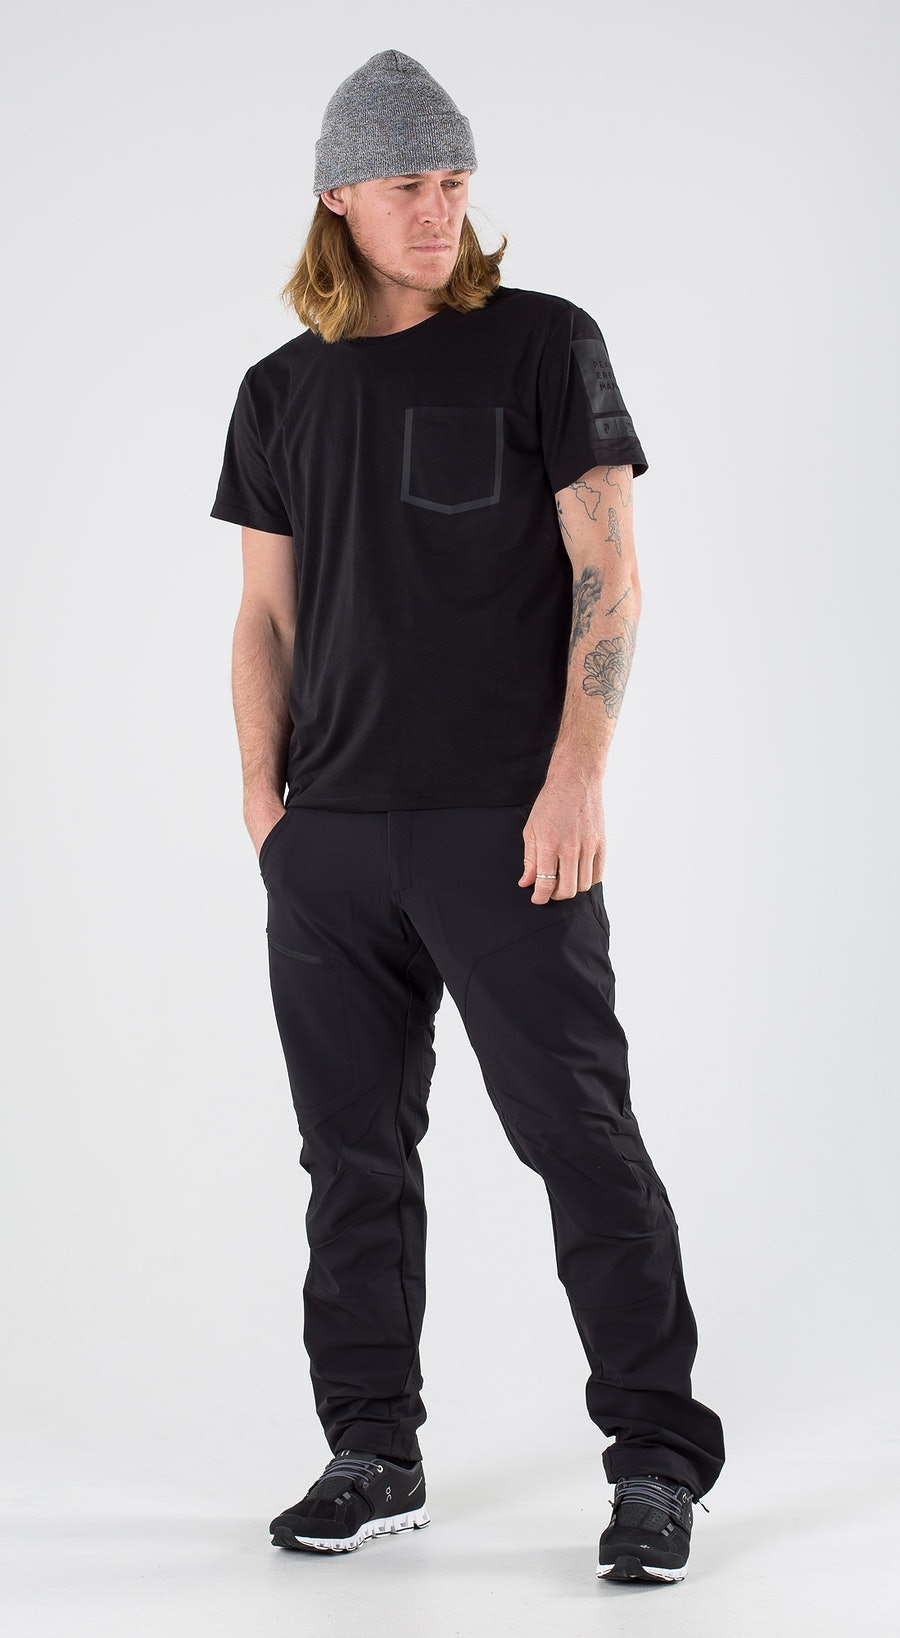 Peak Performance 2 0 Tech Tee Black Outfit Multi